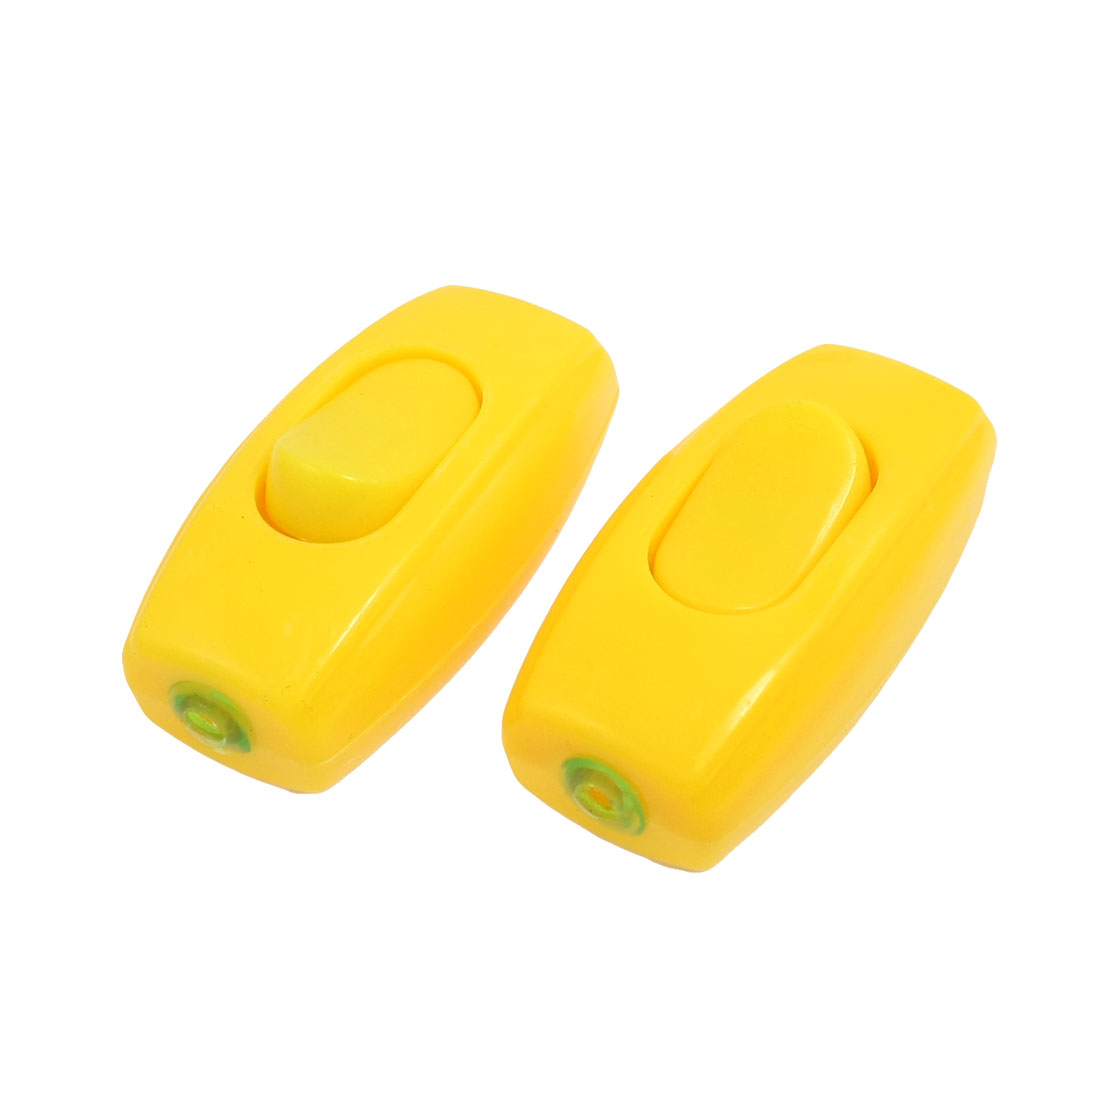 2 Pcs Yellow Plastic Housing in Line Cord on/off Switch AC 250V 6A